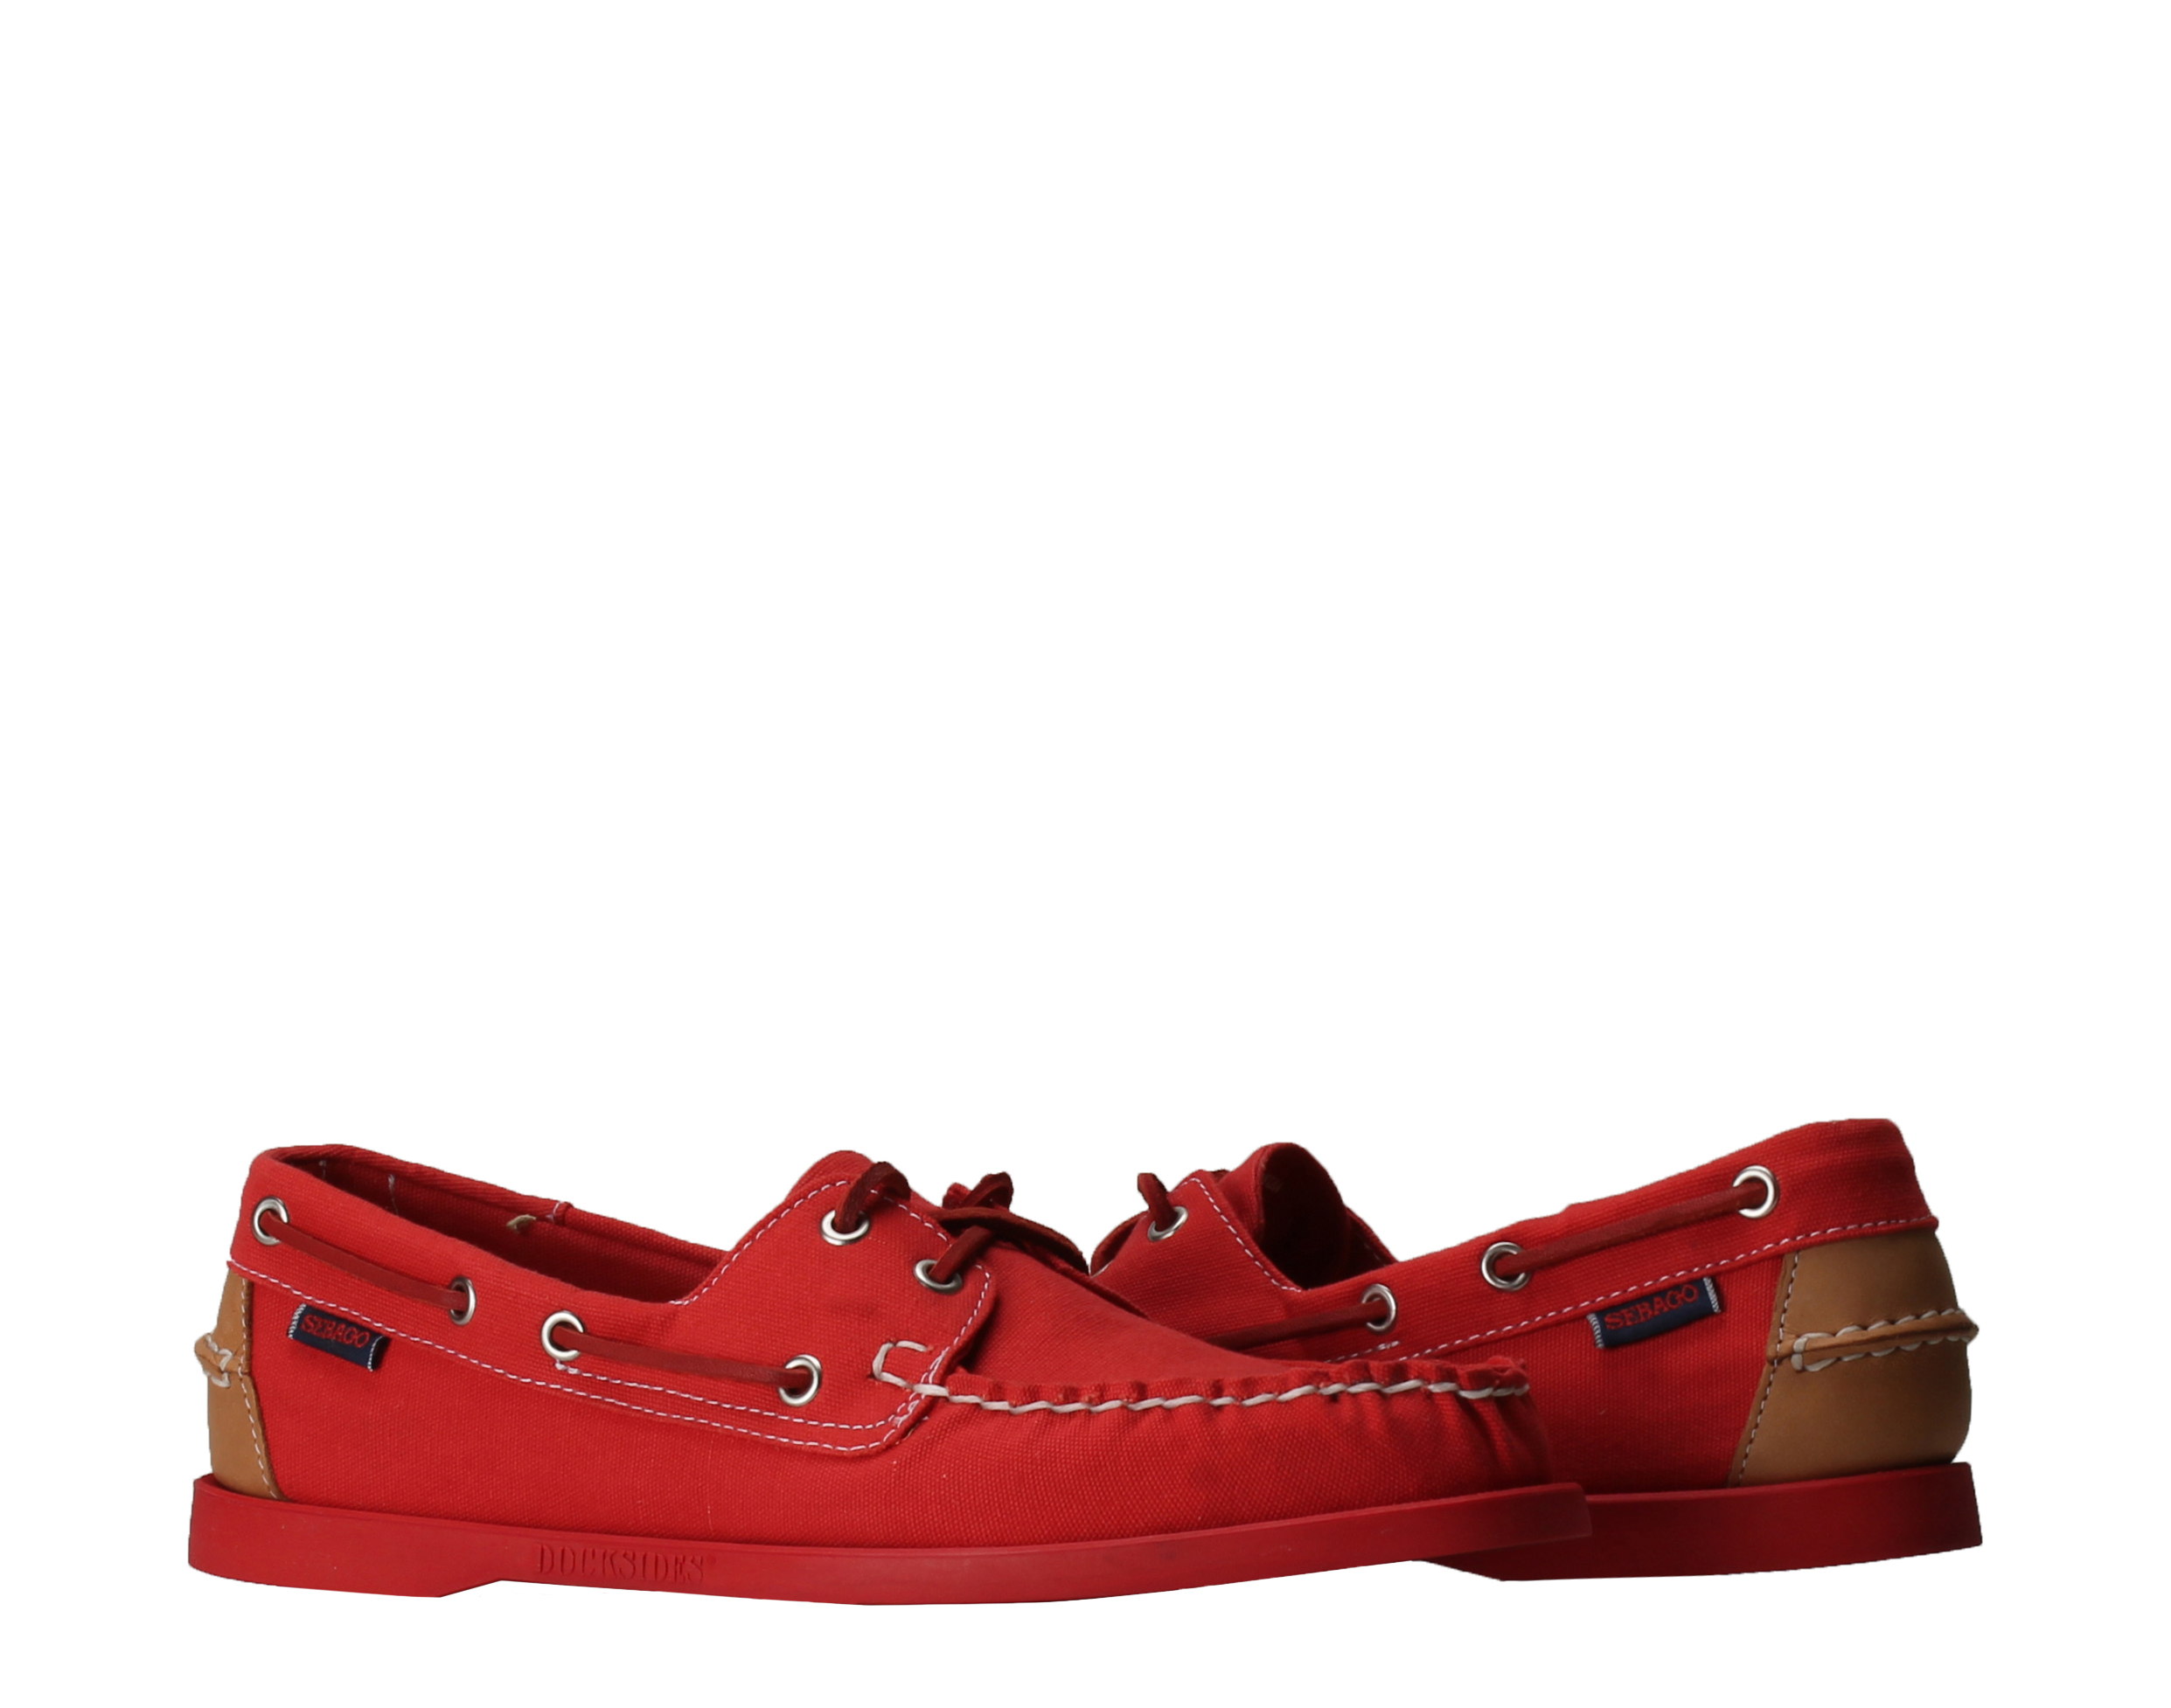 Sebago Docksides Red Canvas Tan Leather Men's Boat Shoes B720148 by Sebago